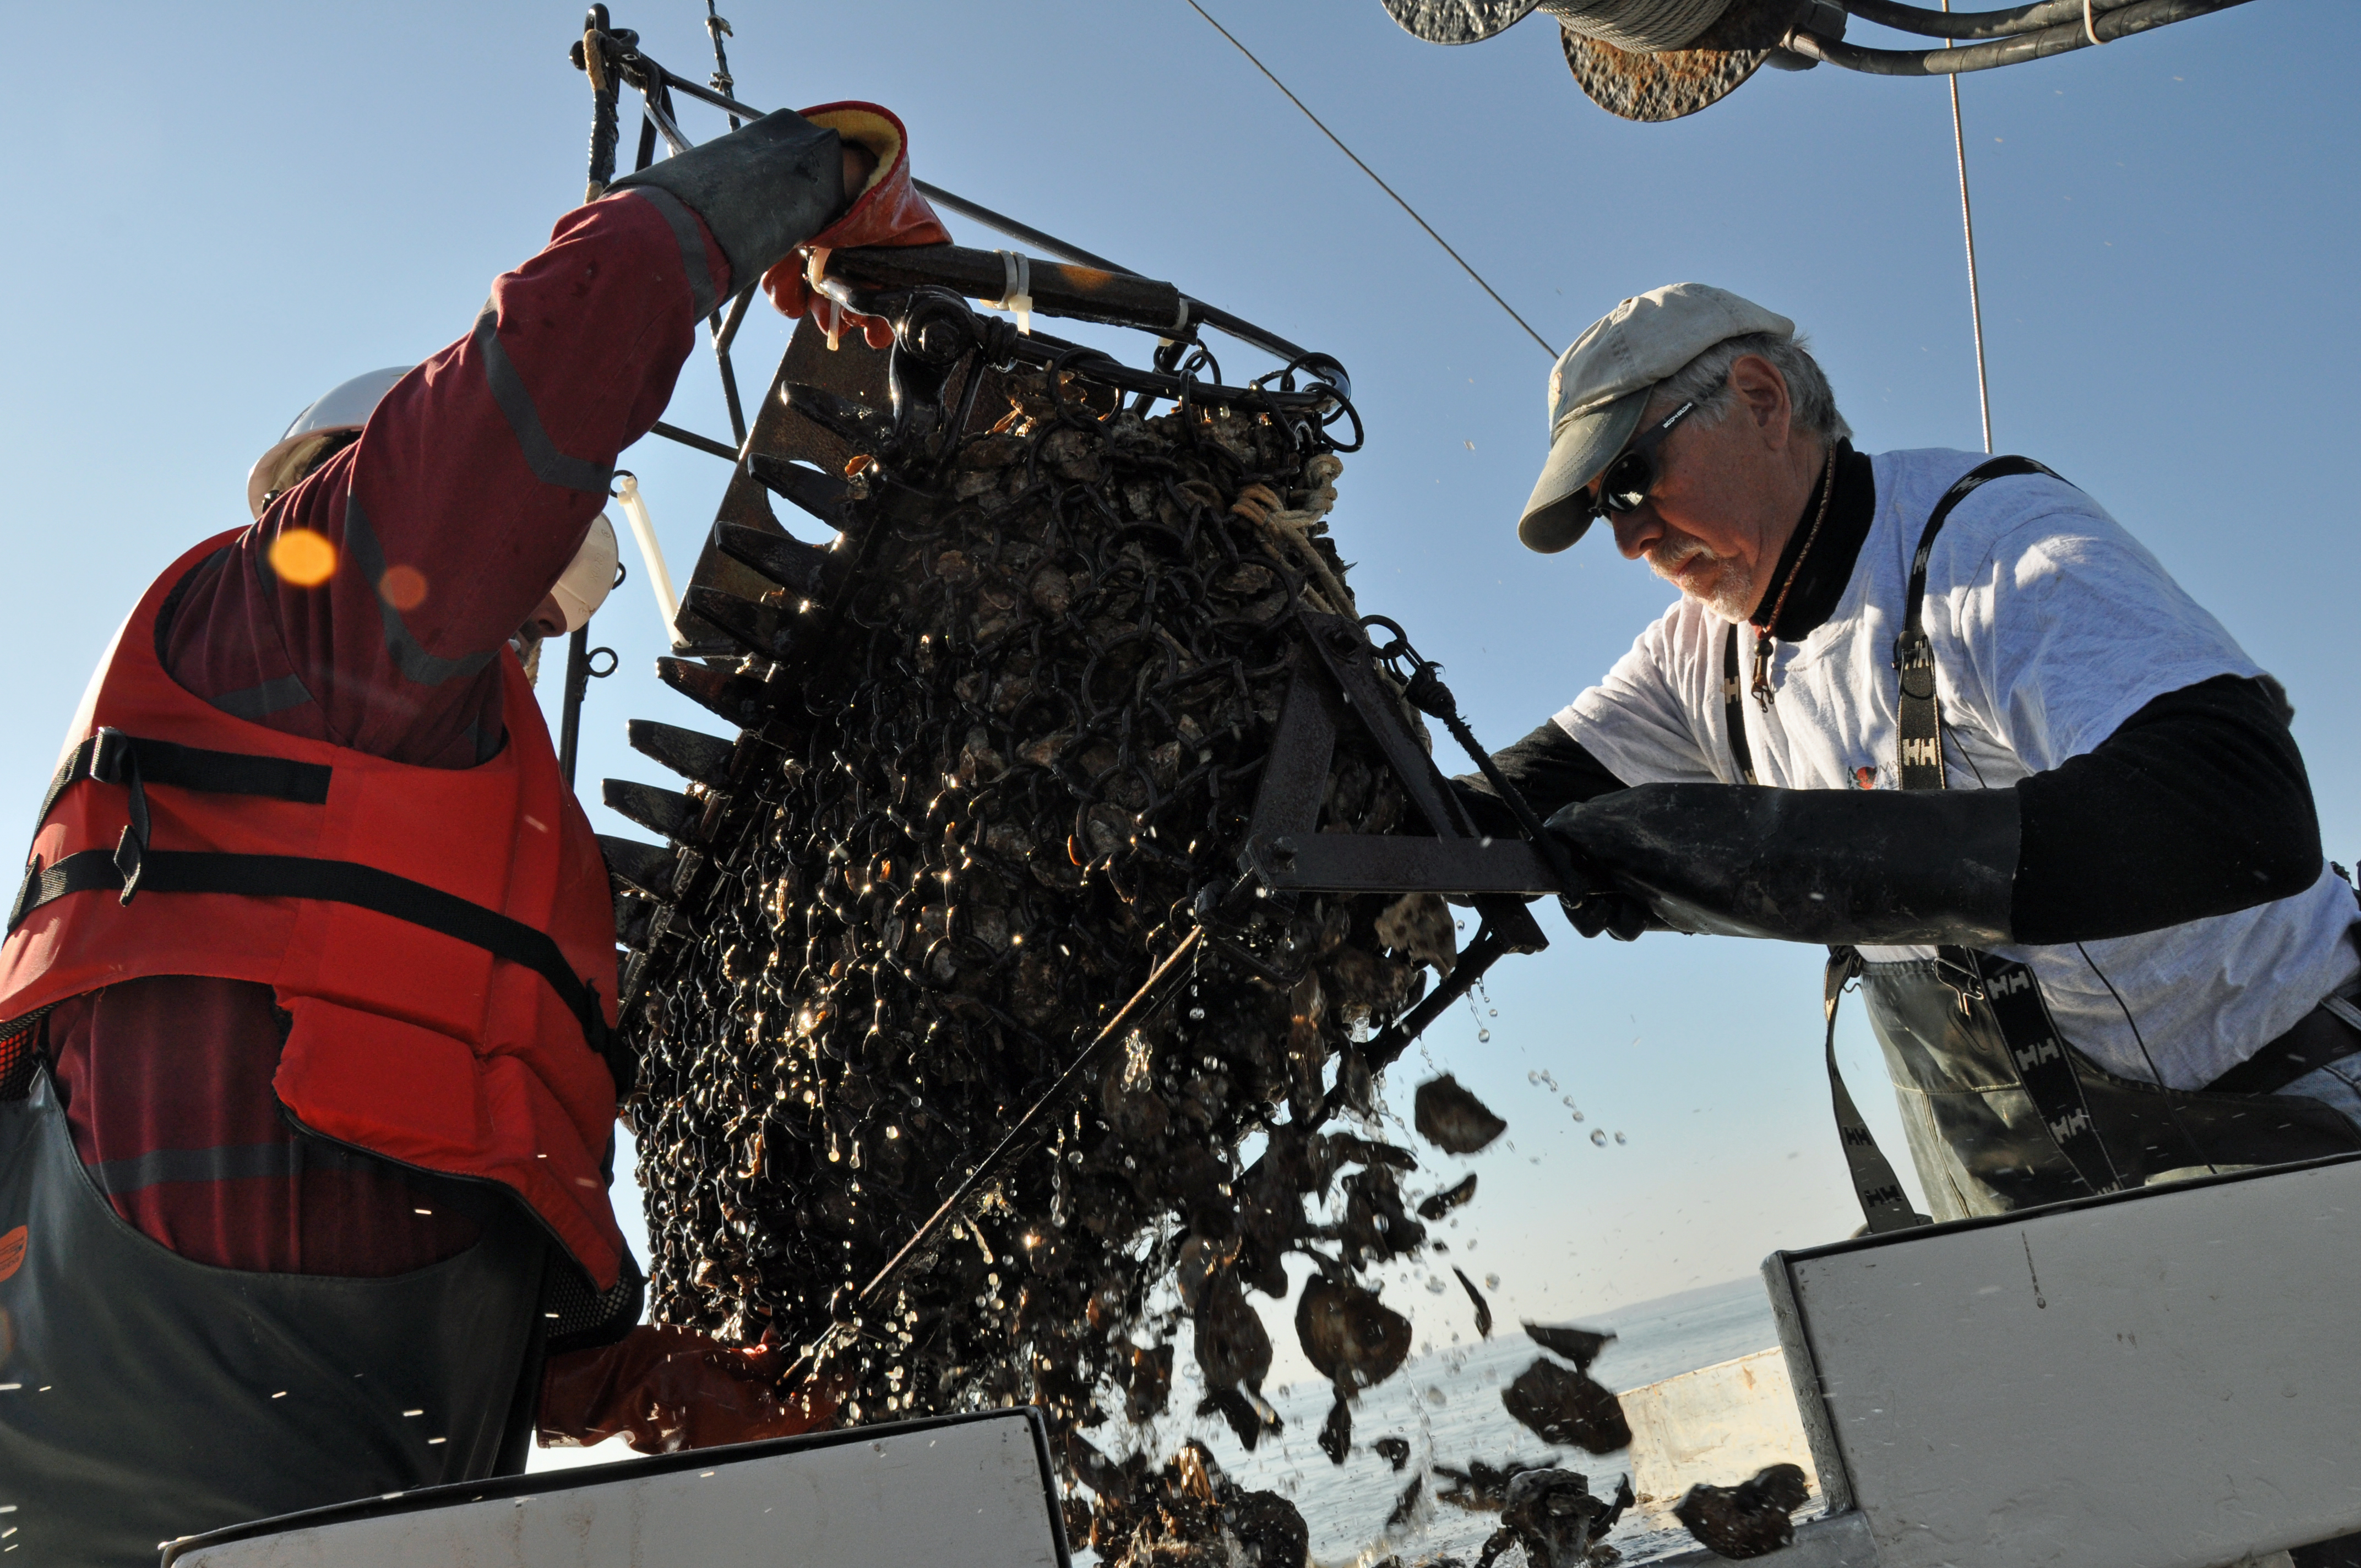 Chesapeake Bay oyster survey, photo by multimedia journalist and environment reporter Pamela Wood.